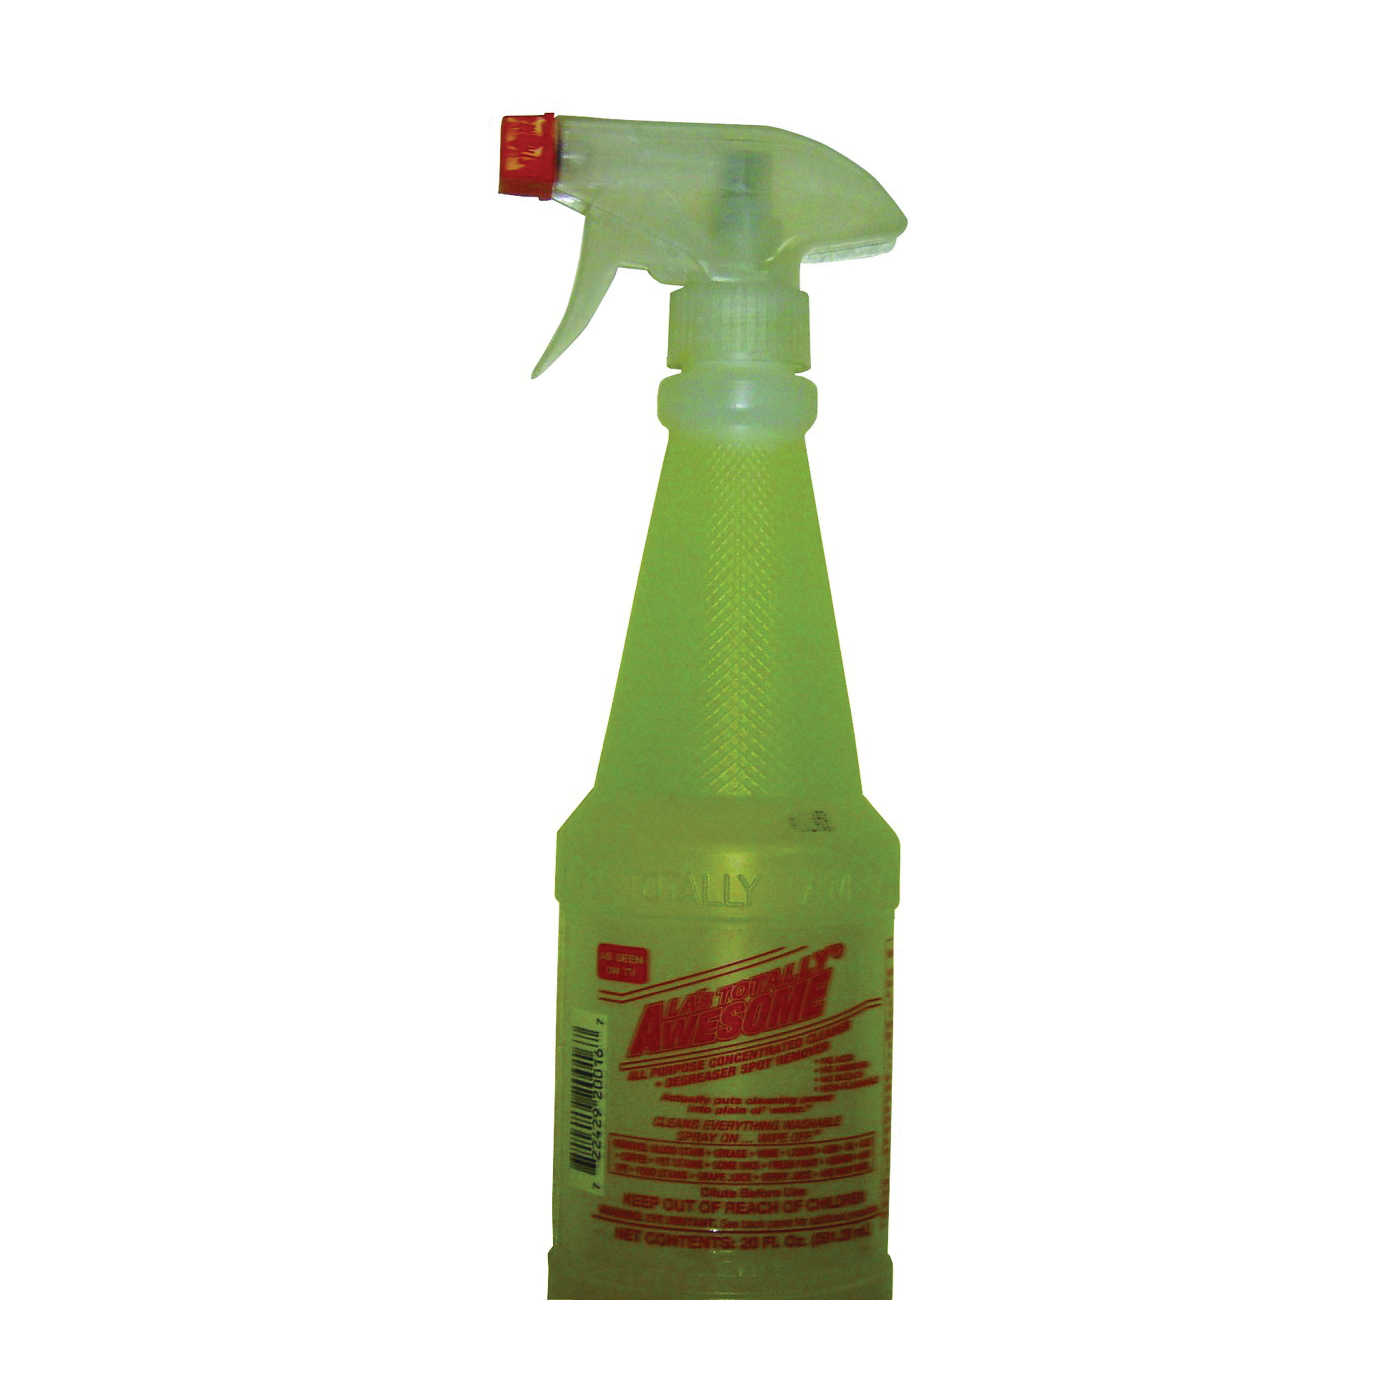 Picture of LA's TOTALLY AWESOME 201 Cleaner/Degreaser, 20 oz Package, Bottle, Liquid, Orange